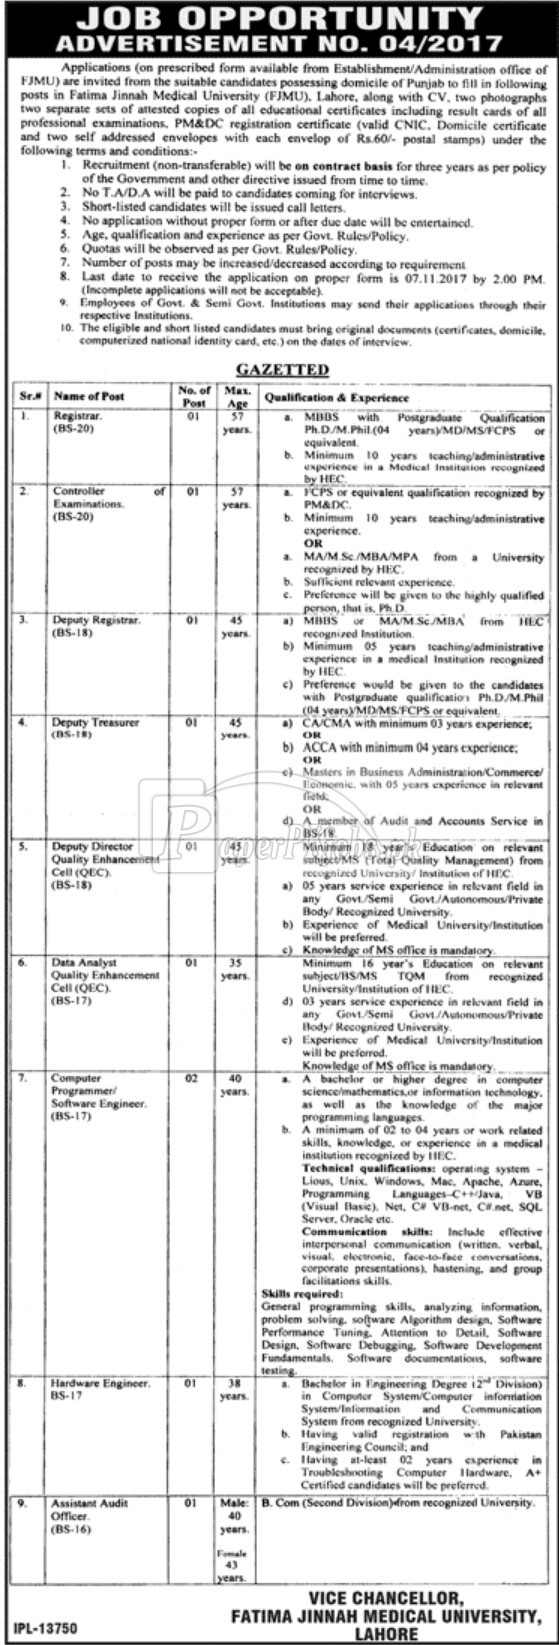 Fatima Jinnah Medical University FJMU Lahore Jobs 2017